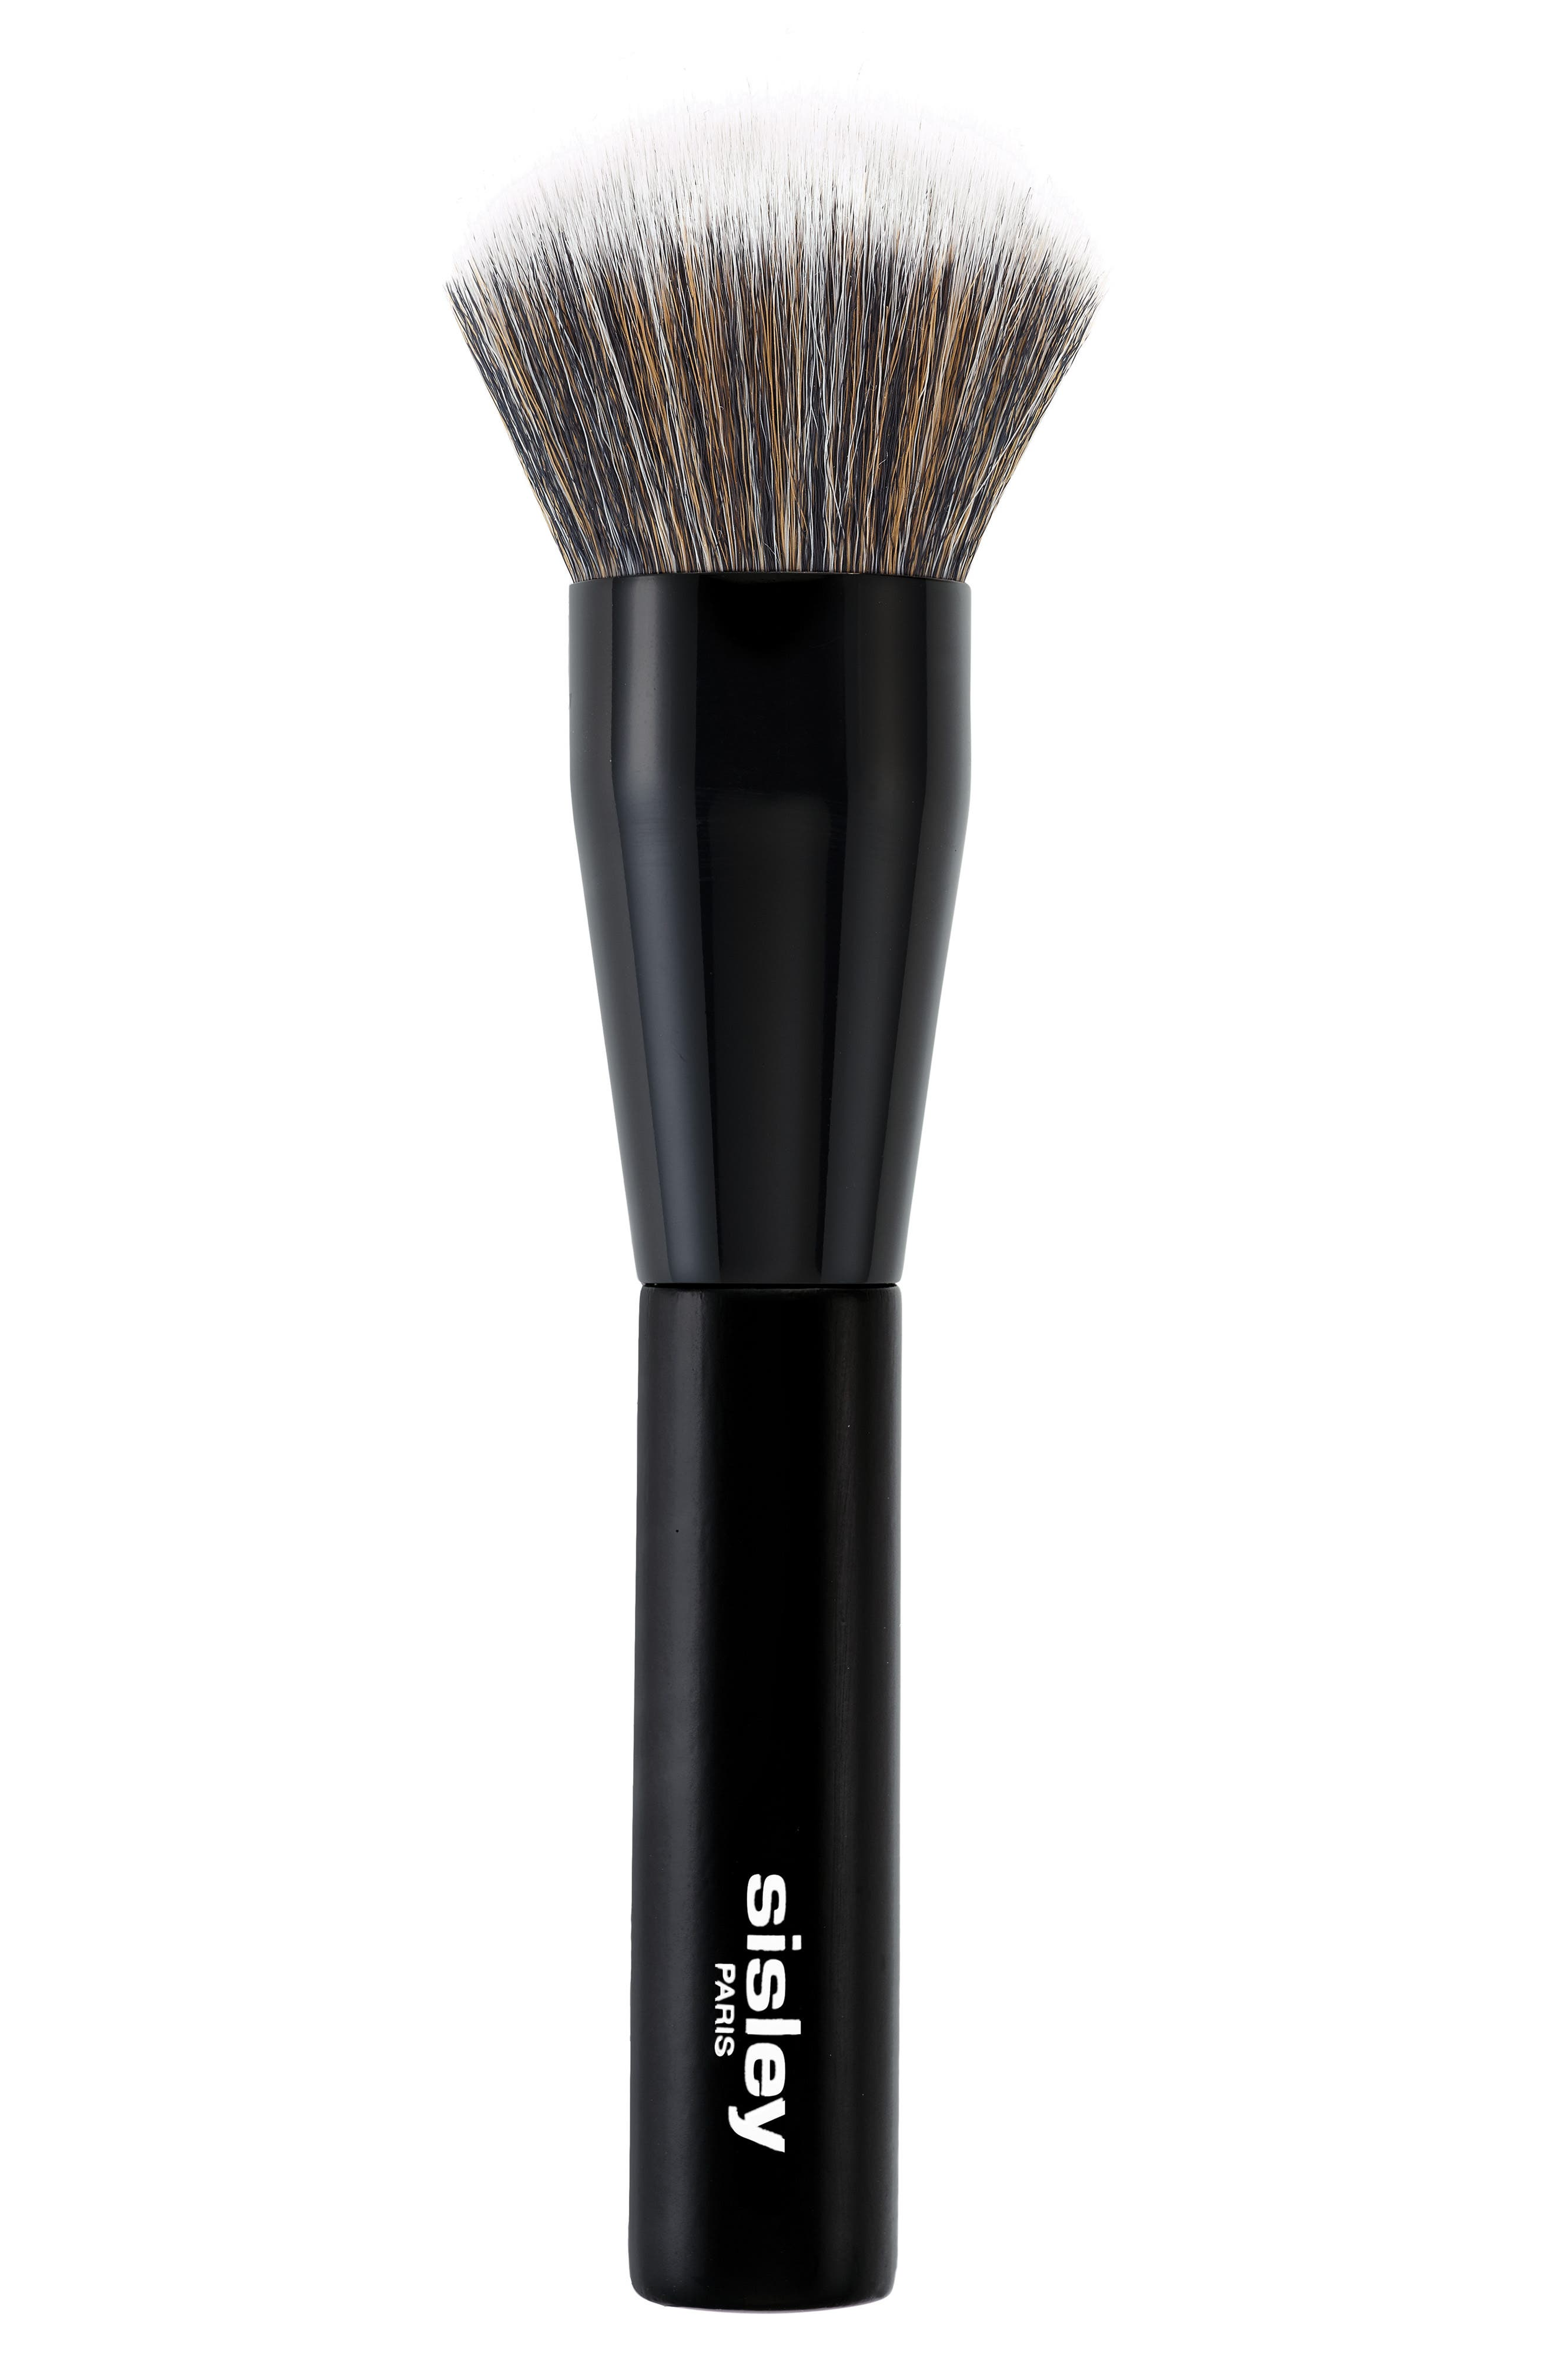 What it is: A synthetic-bristle brush with a generous, rounded shape that provides natural to fuller coverage. What it does: Ideal for use with all loose and compact powders, this brush is designed for easy and rapid application. It helps you achieve a perfected, even and mattified complexion. How to use: Sweep the brush across your product directly from the compact. If necessary, tap to remove excess before applying it to the face. For light